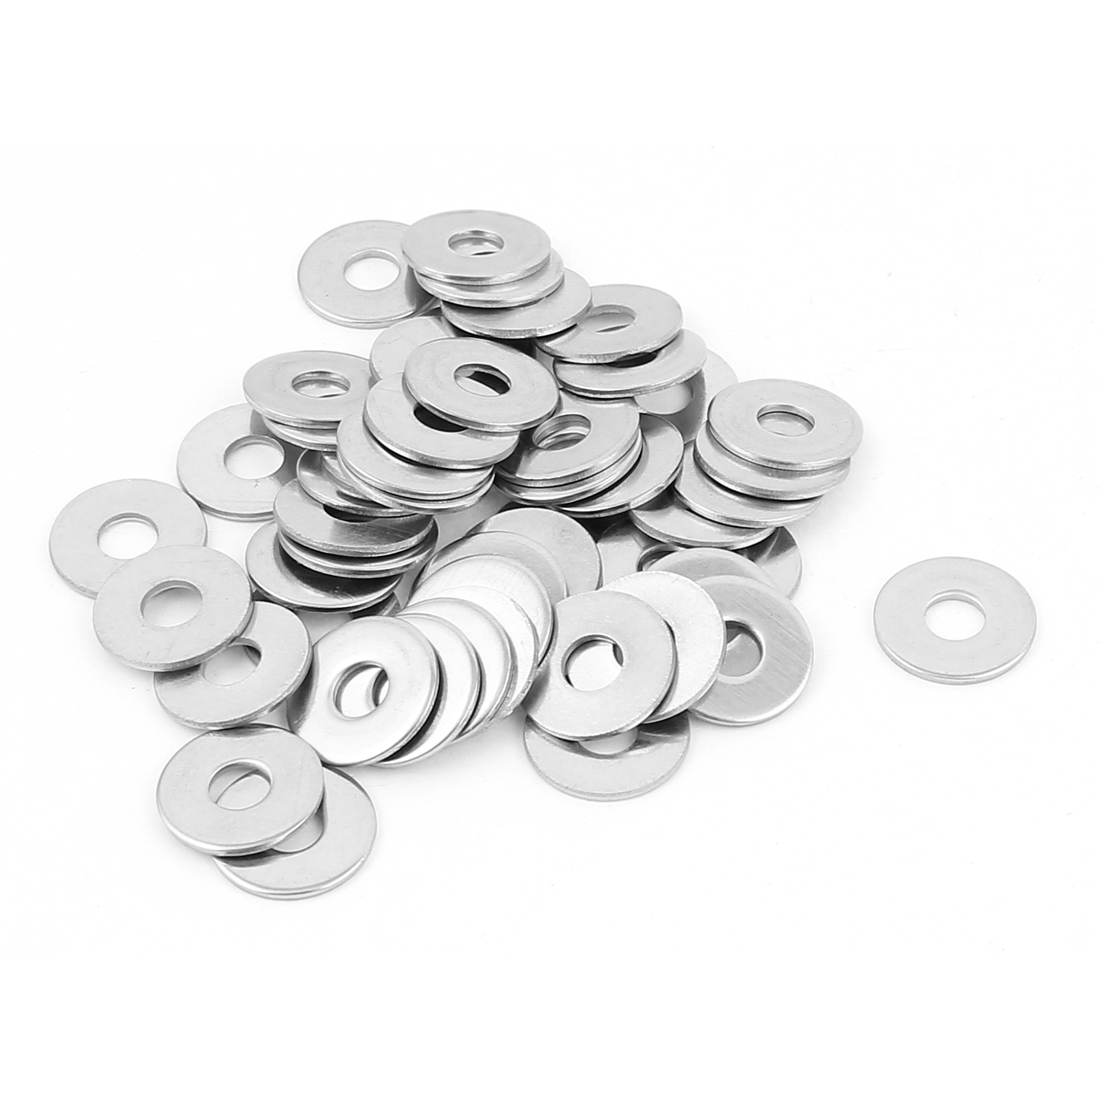 5x15x1mm 304 Stainless Steel Thin Washers Flat Gaskets 50pcs